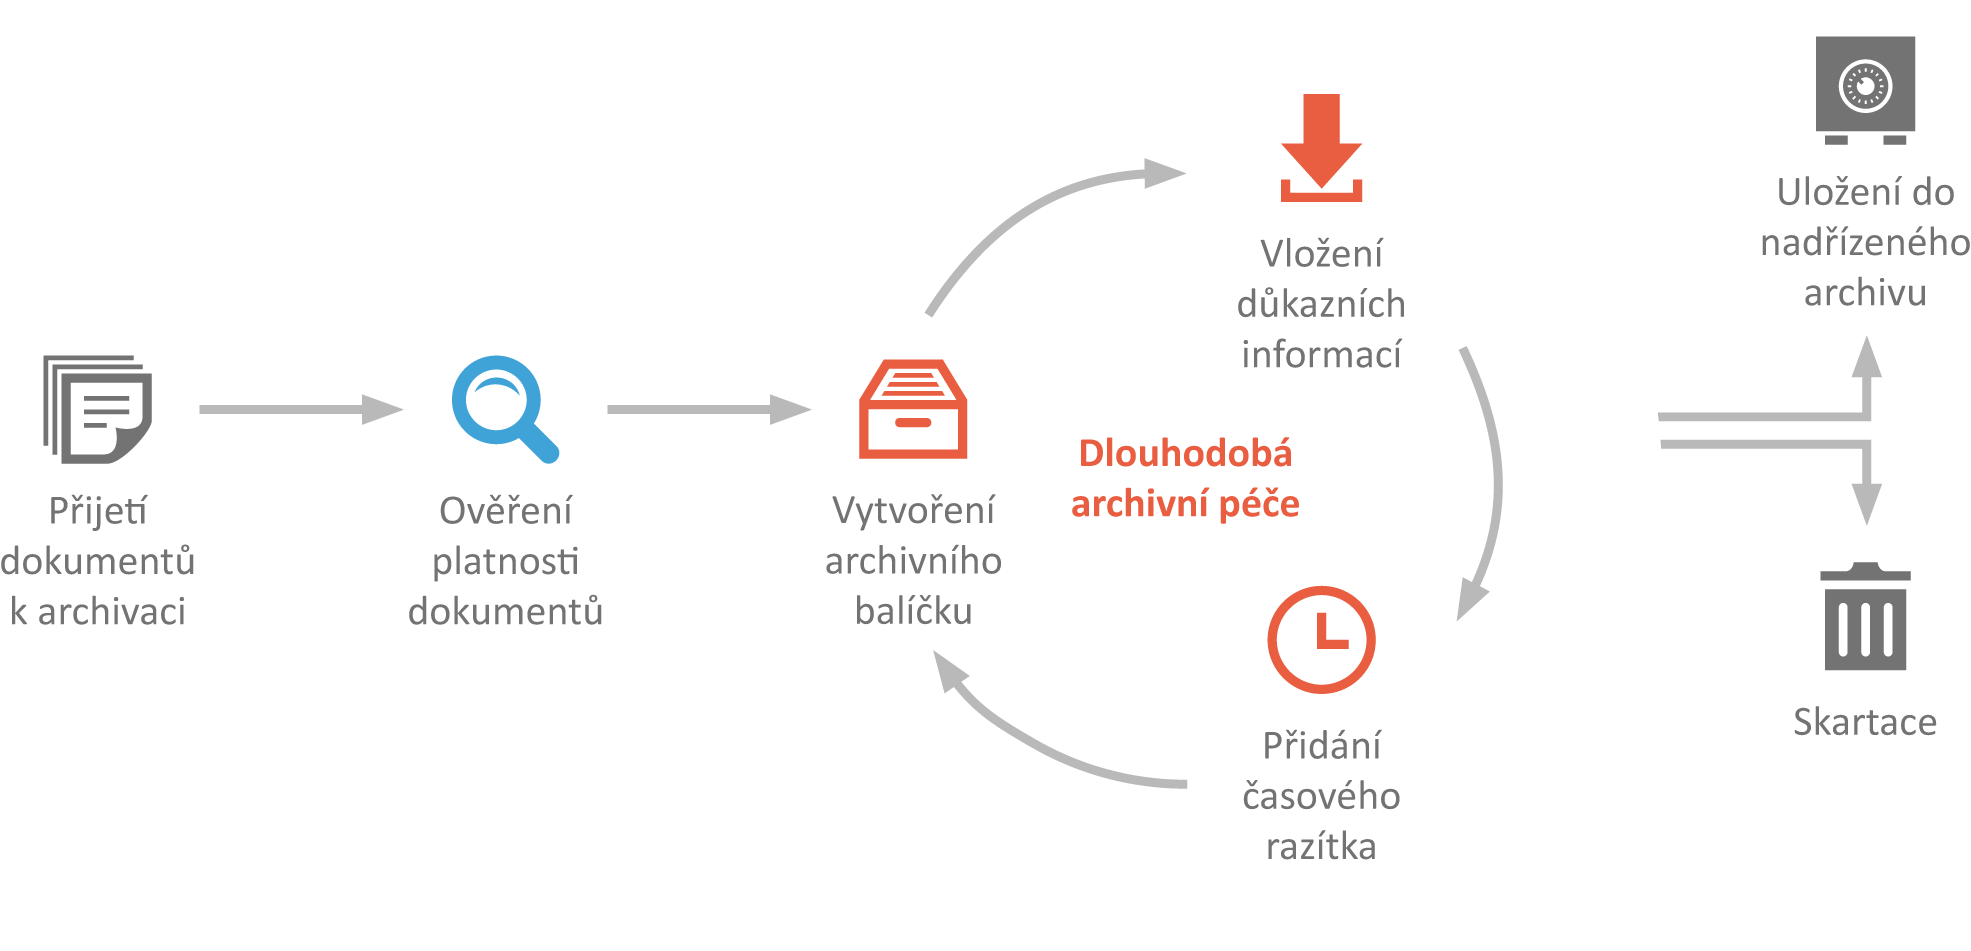 sefira-obelisk-trusted-archive-schema